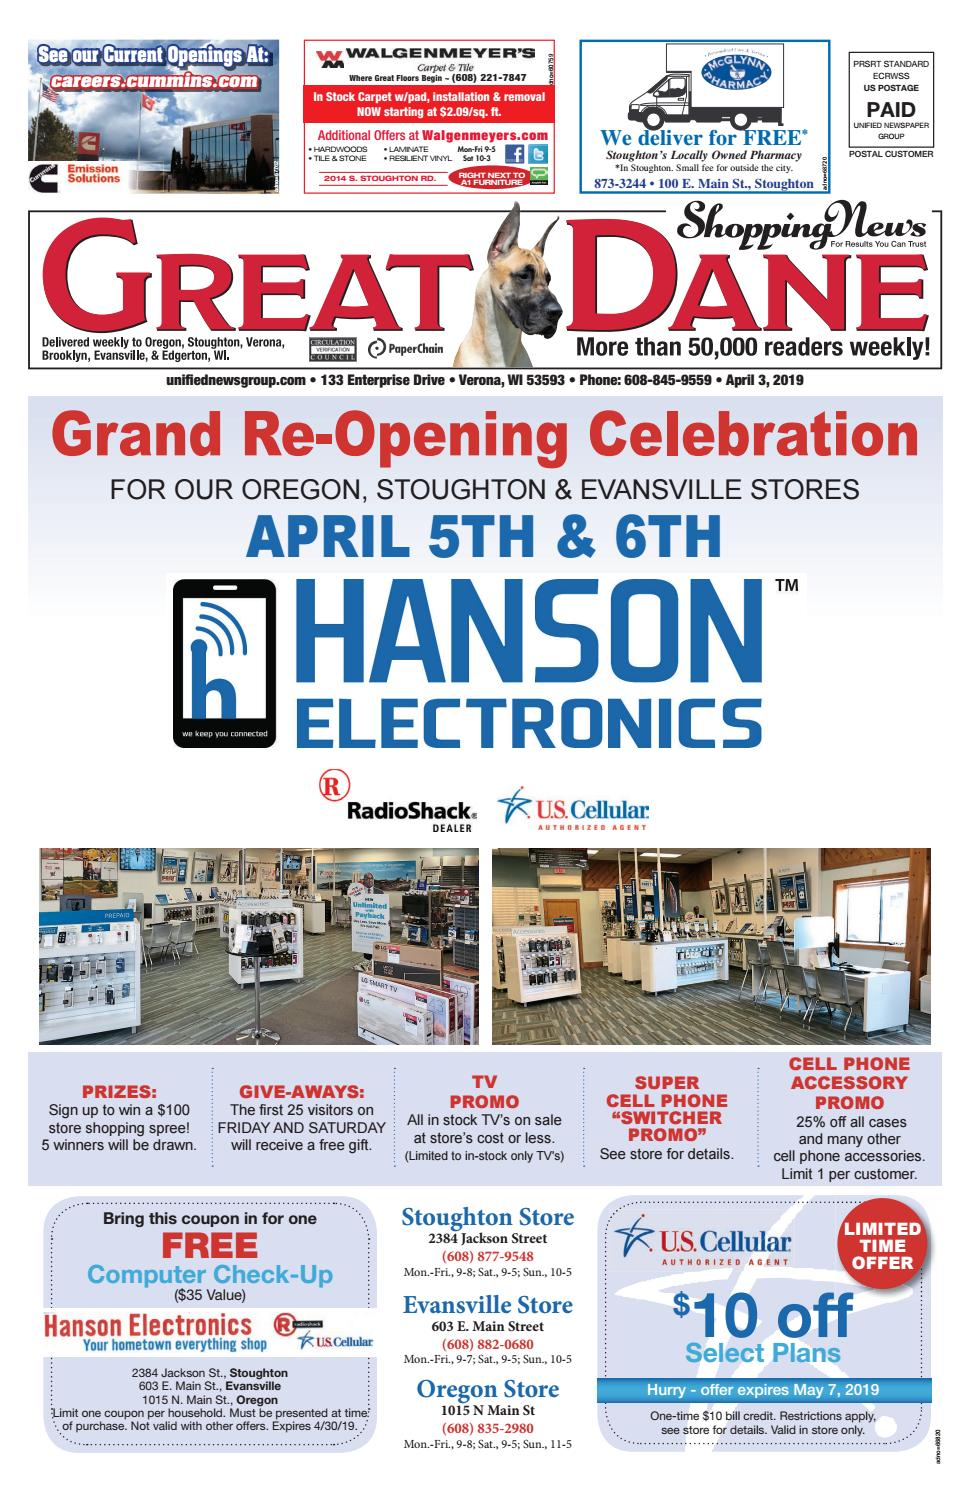 4/3/19 Great Dane Shopping News